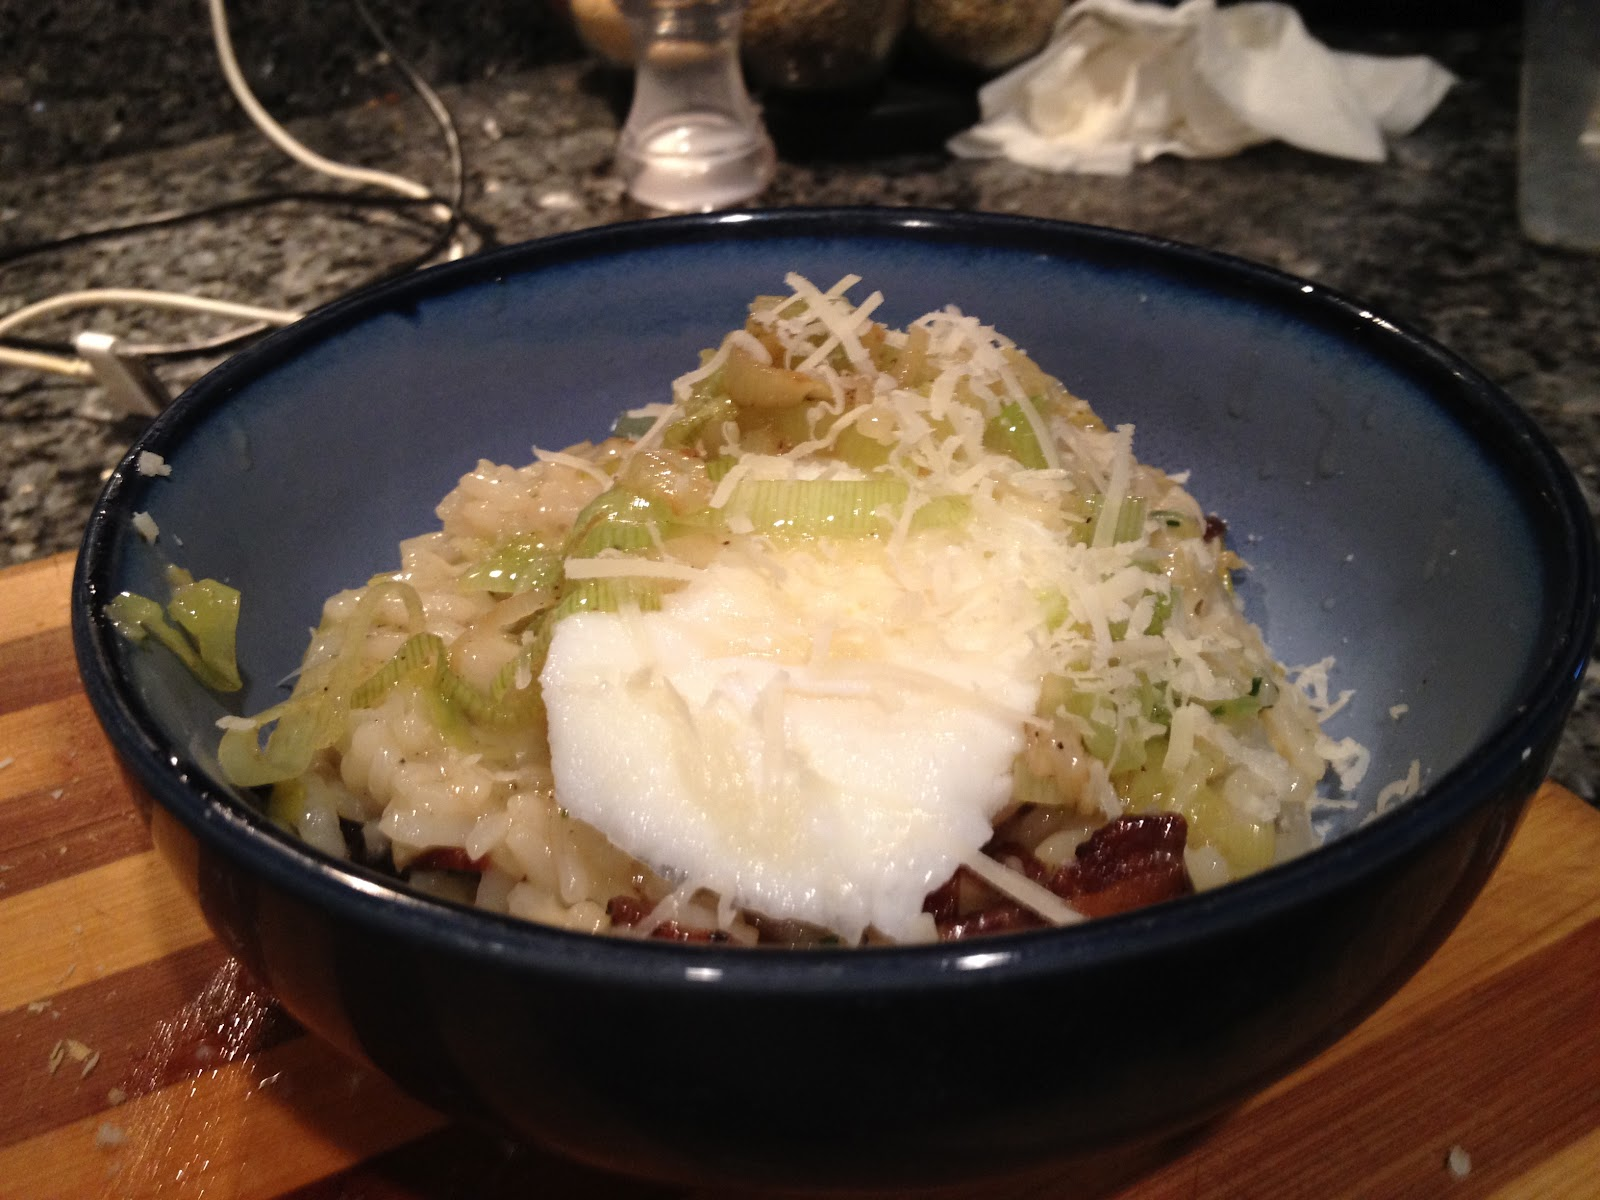 50 Shades of Eating: Bacon and Leek Risotto with Poached Egg